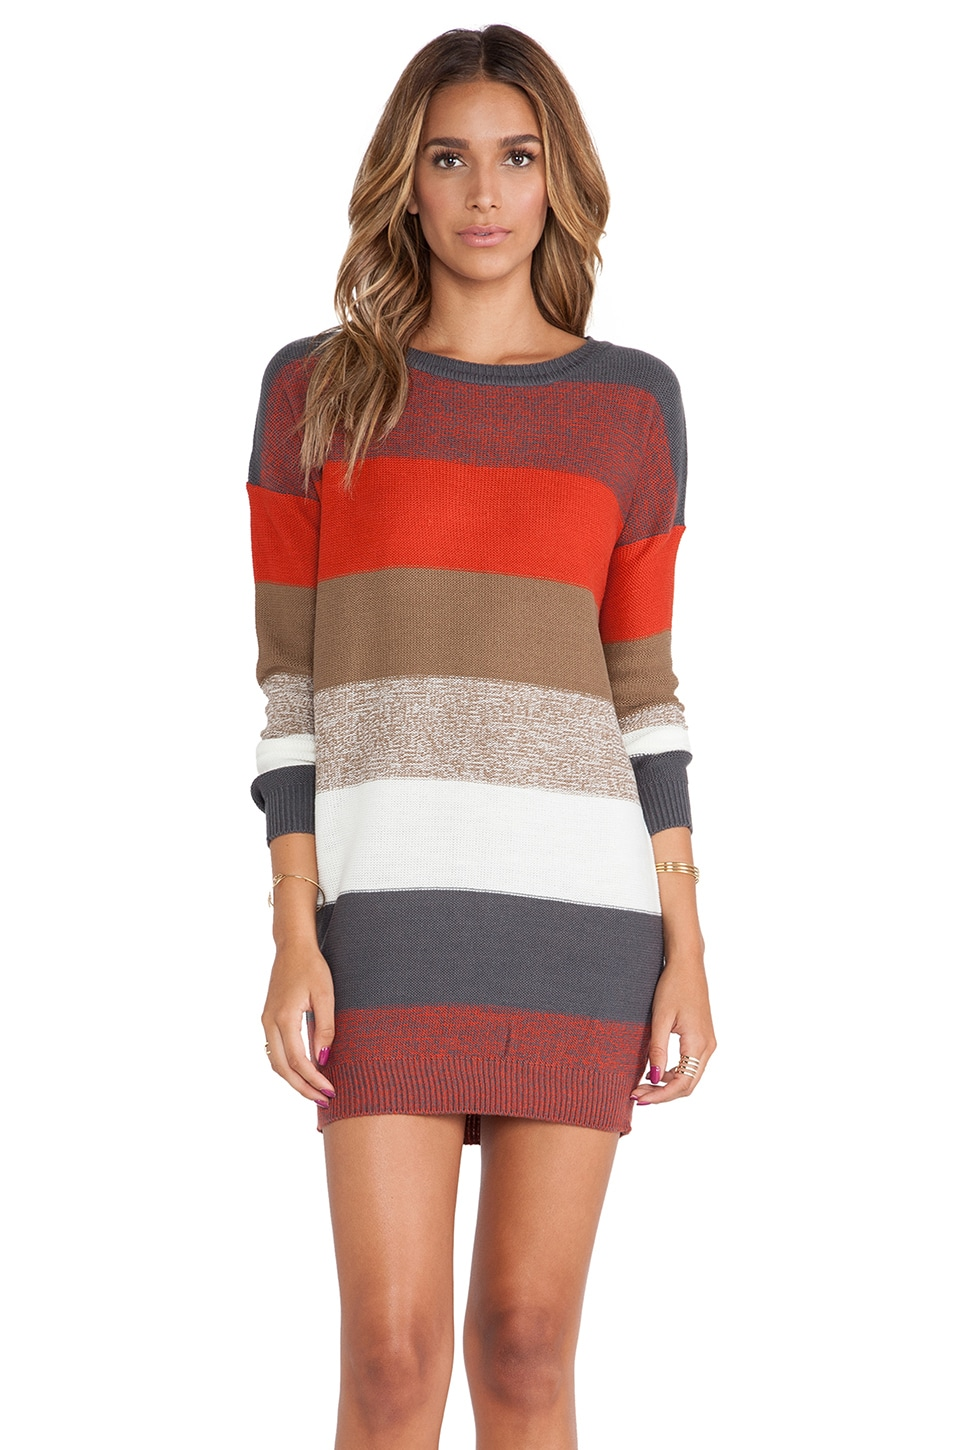 BB Dakota Marilou Sweater Dress in Red Multi